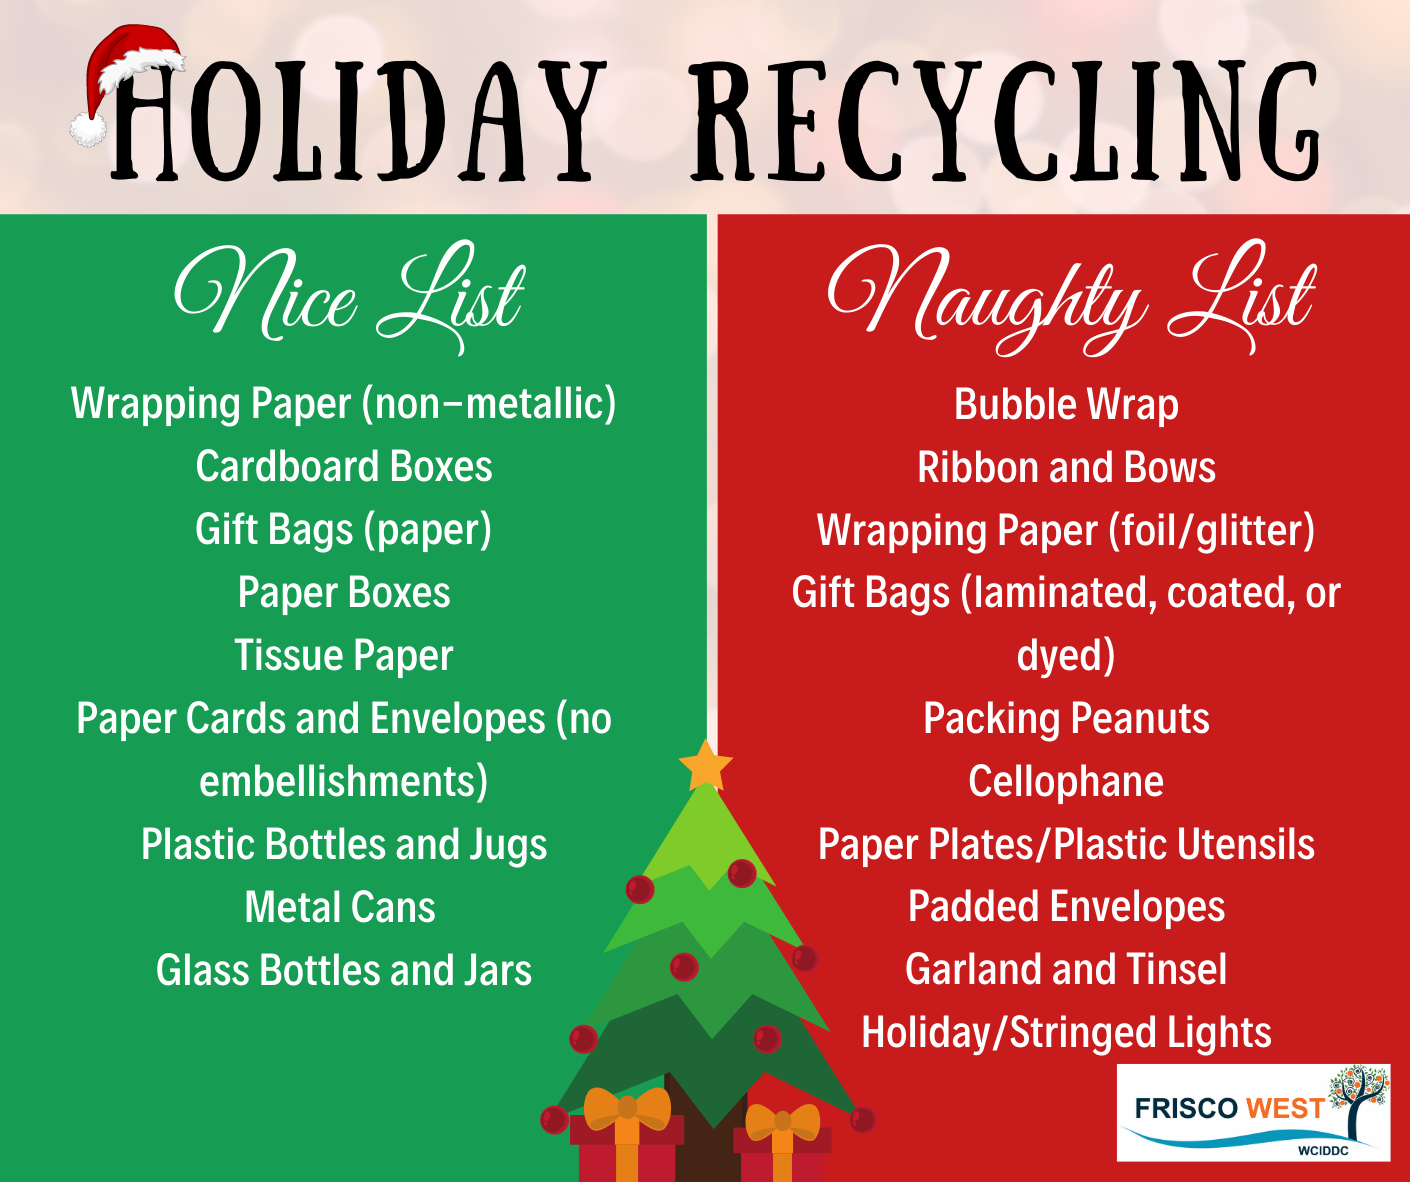 CWD HOLIDAY RECYCLING